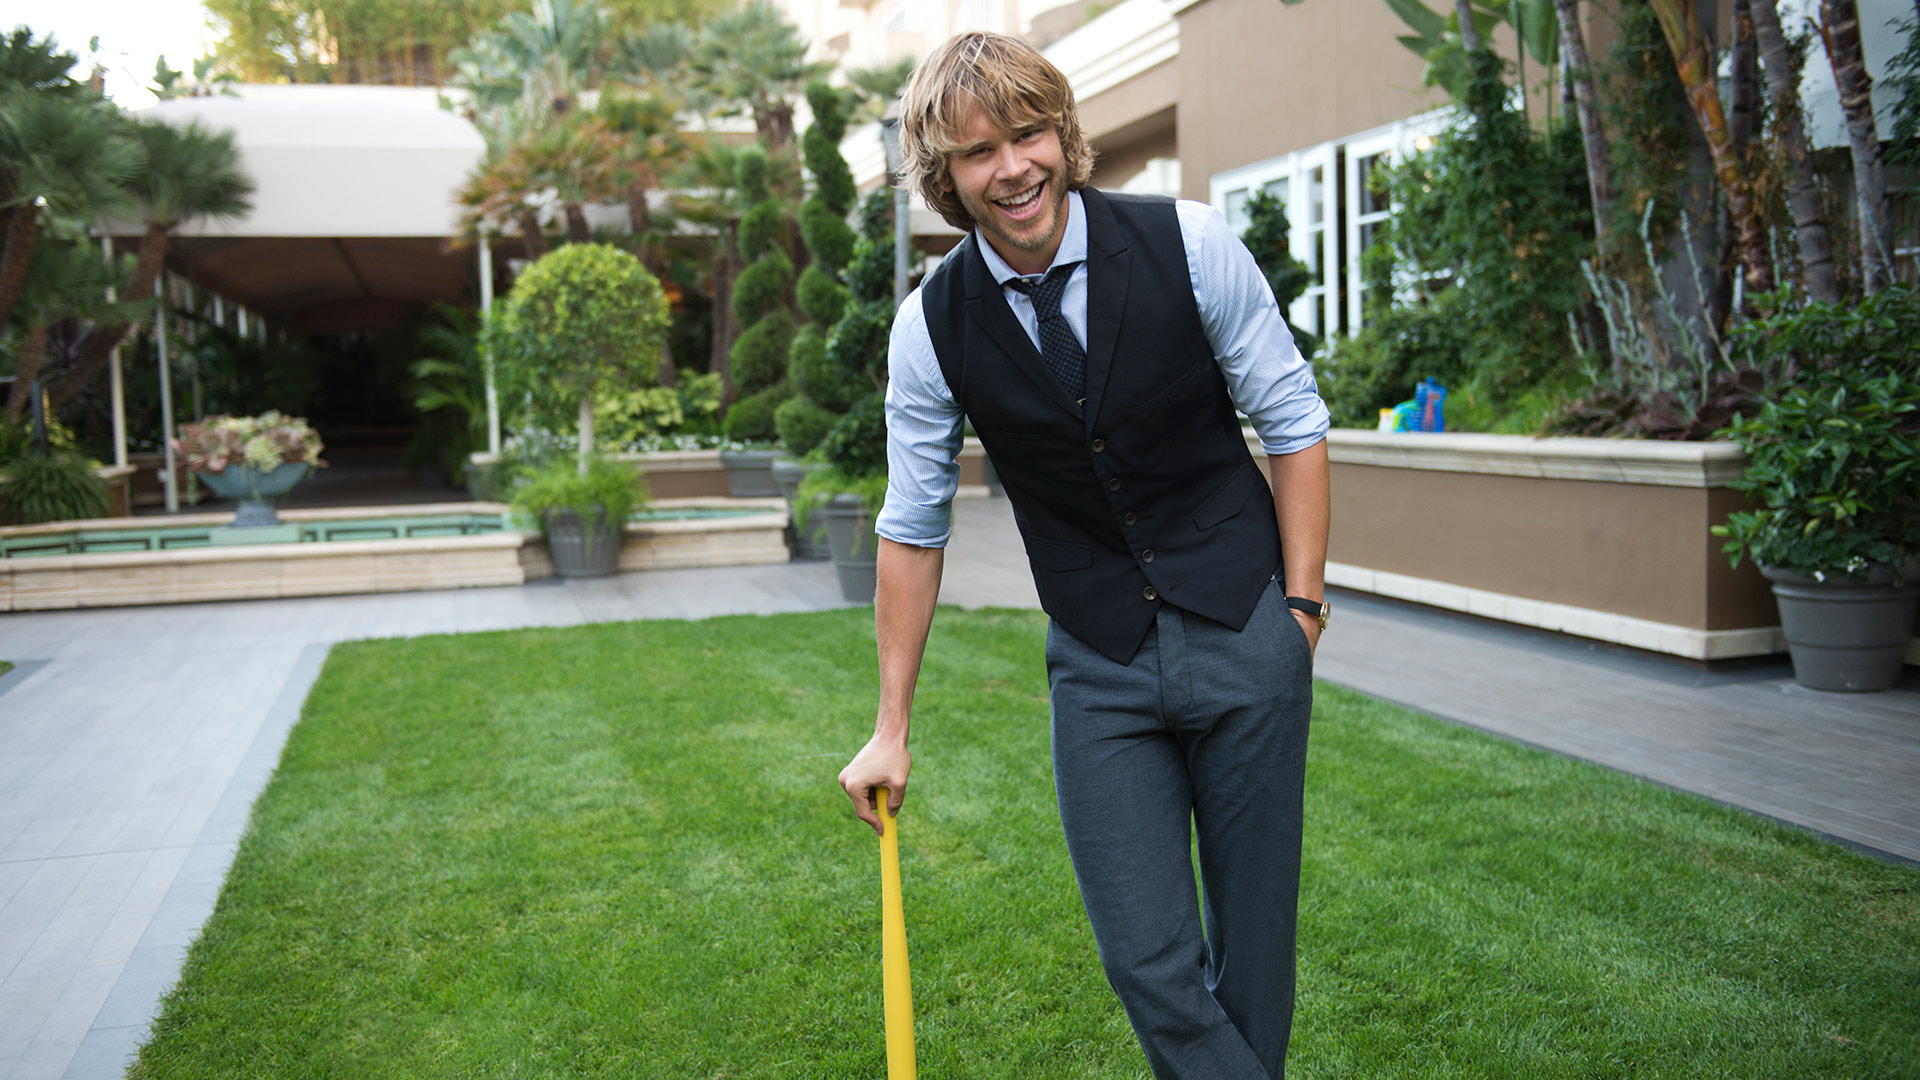 Batter up, Eric Christian Olsen!